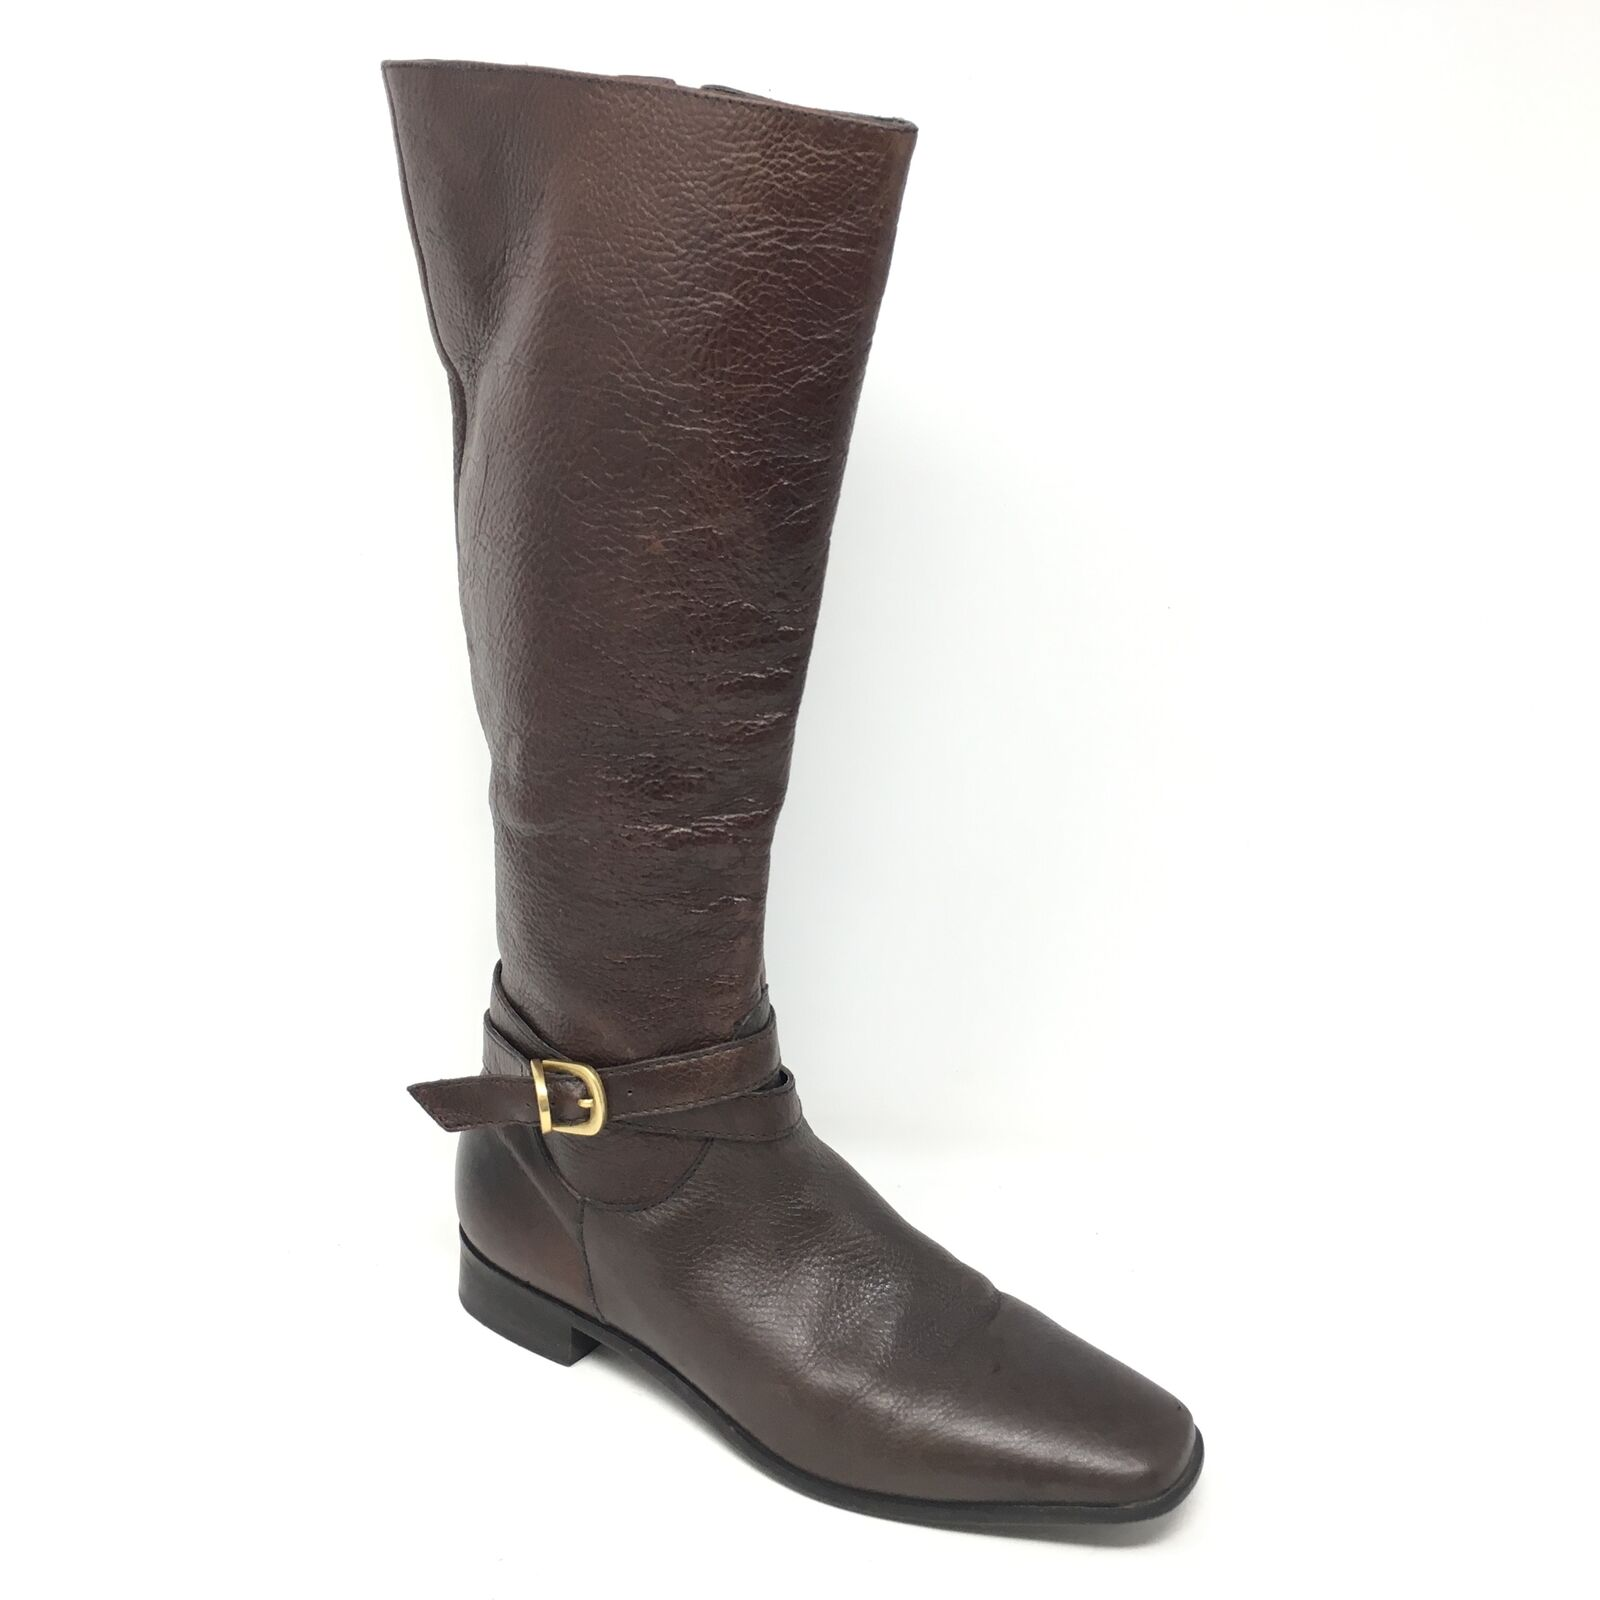 Women's Talbots Knee High Boots shoes Size 6.5B Brown Pebbled Leather Riding AA5